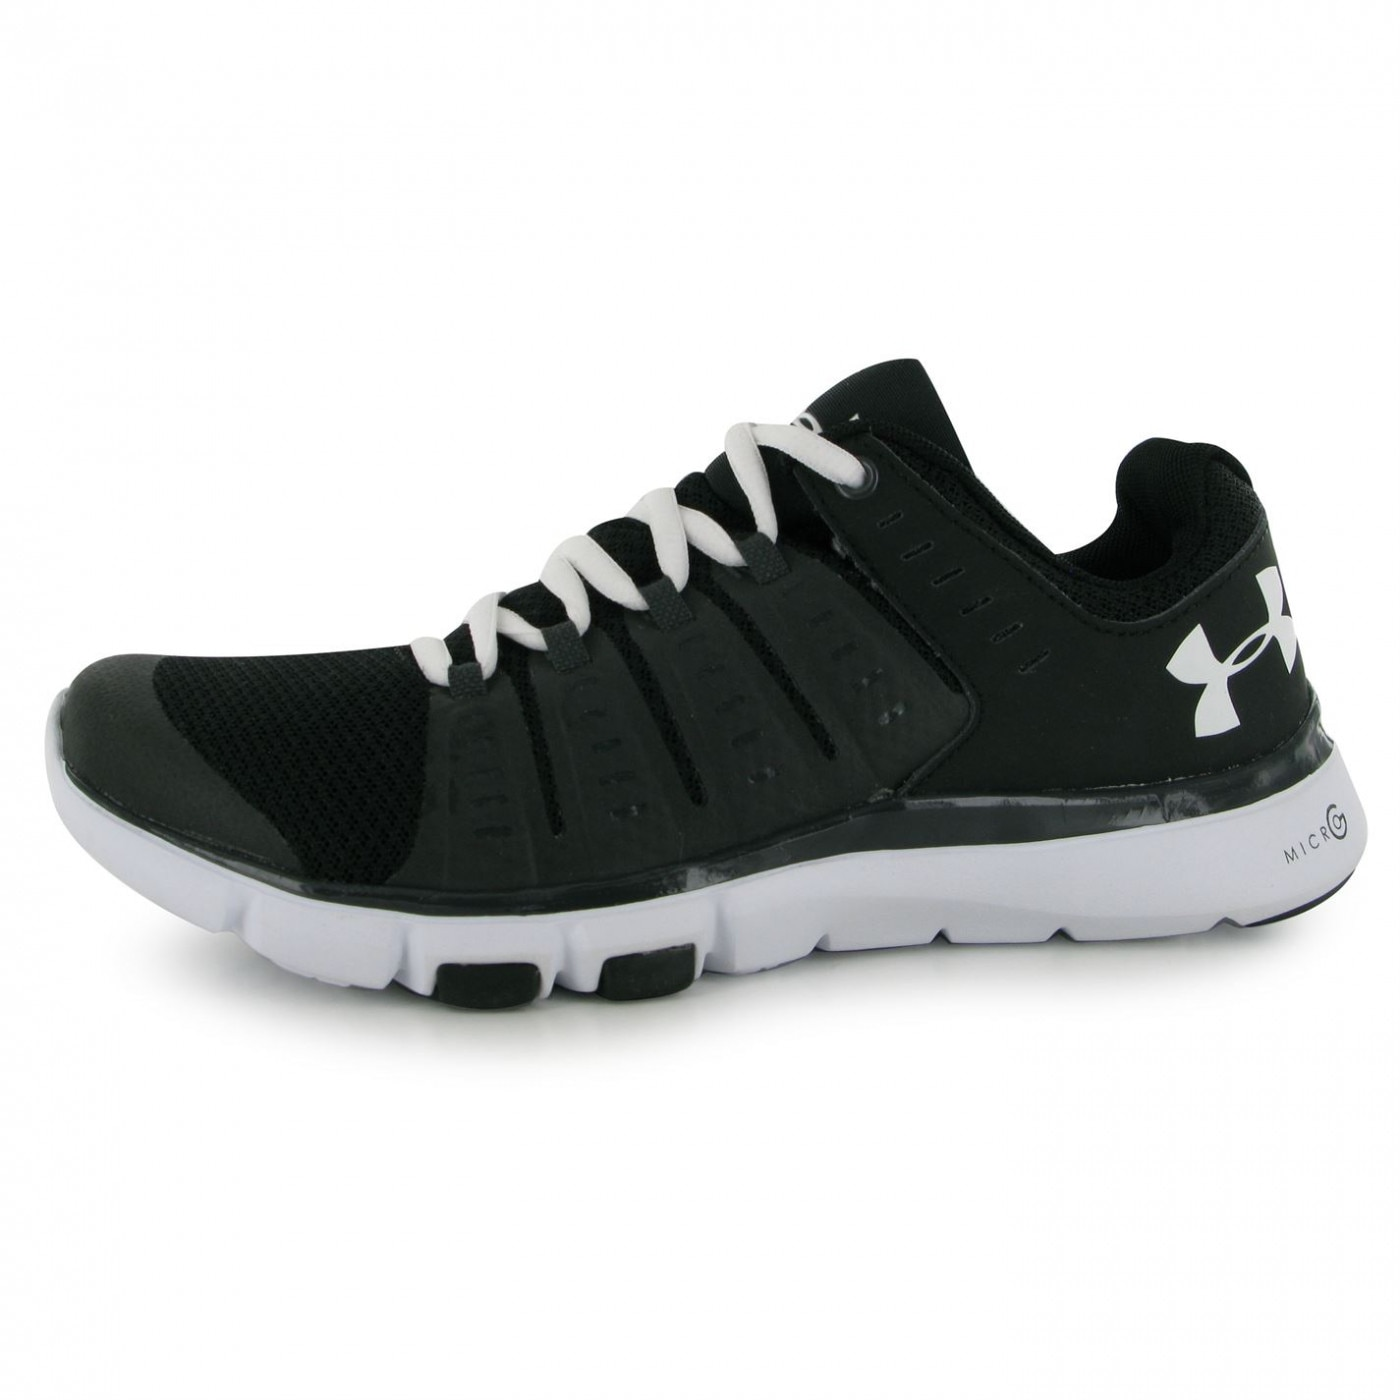 new styles 47d4f 1e838 Under Armour Micro G Limitless Trainers Ladies - FACTCOOL